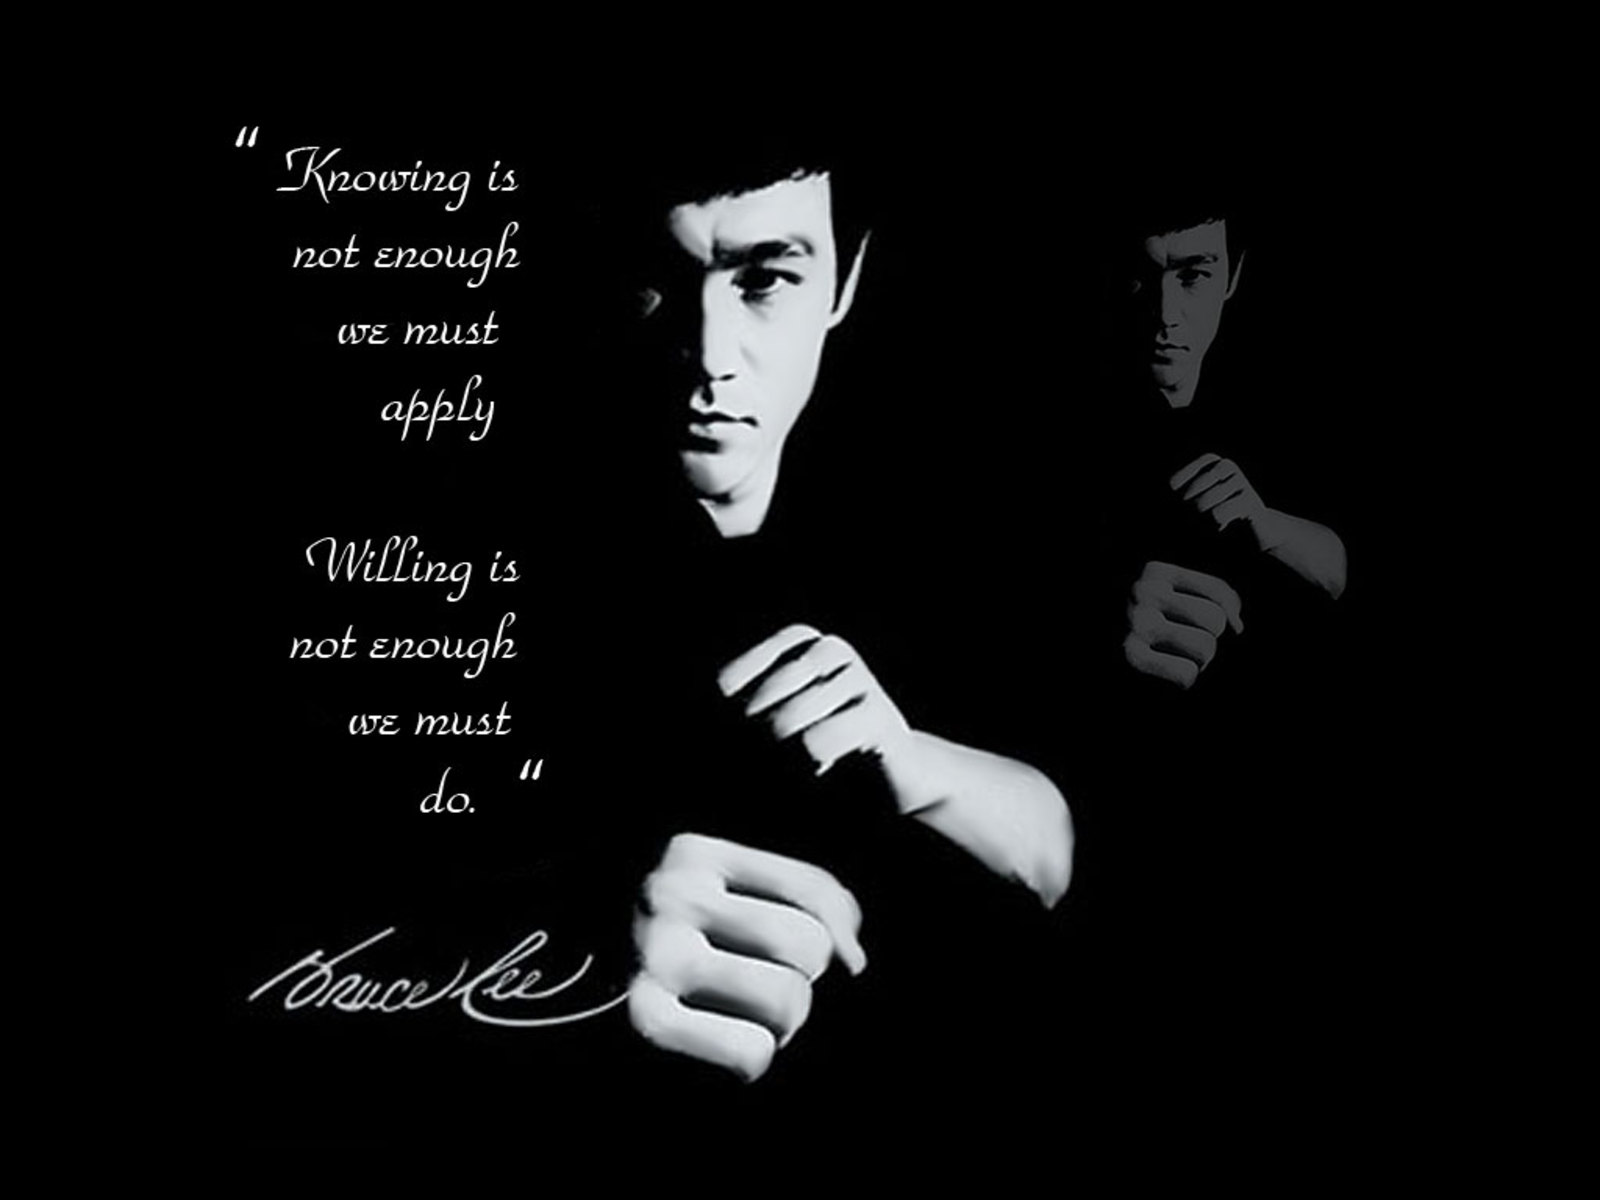 Bruce Lee Jeet Kune do Wallpaper Bruce Lee Jeet Kune do